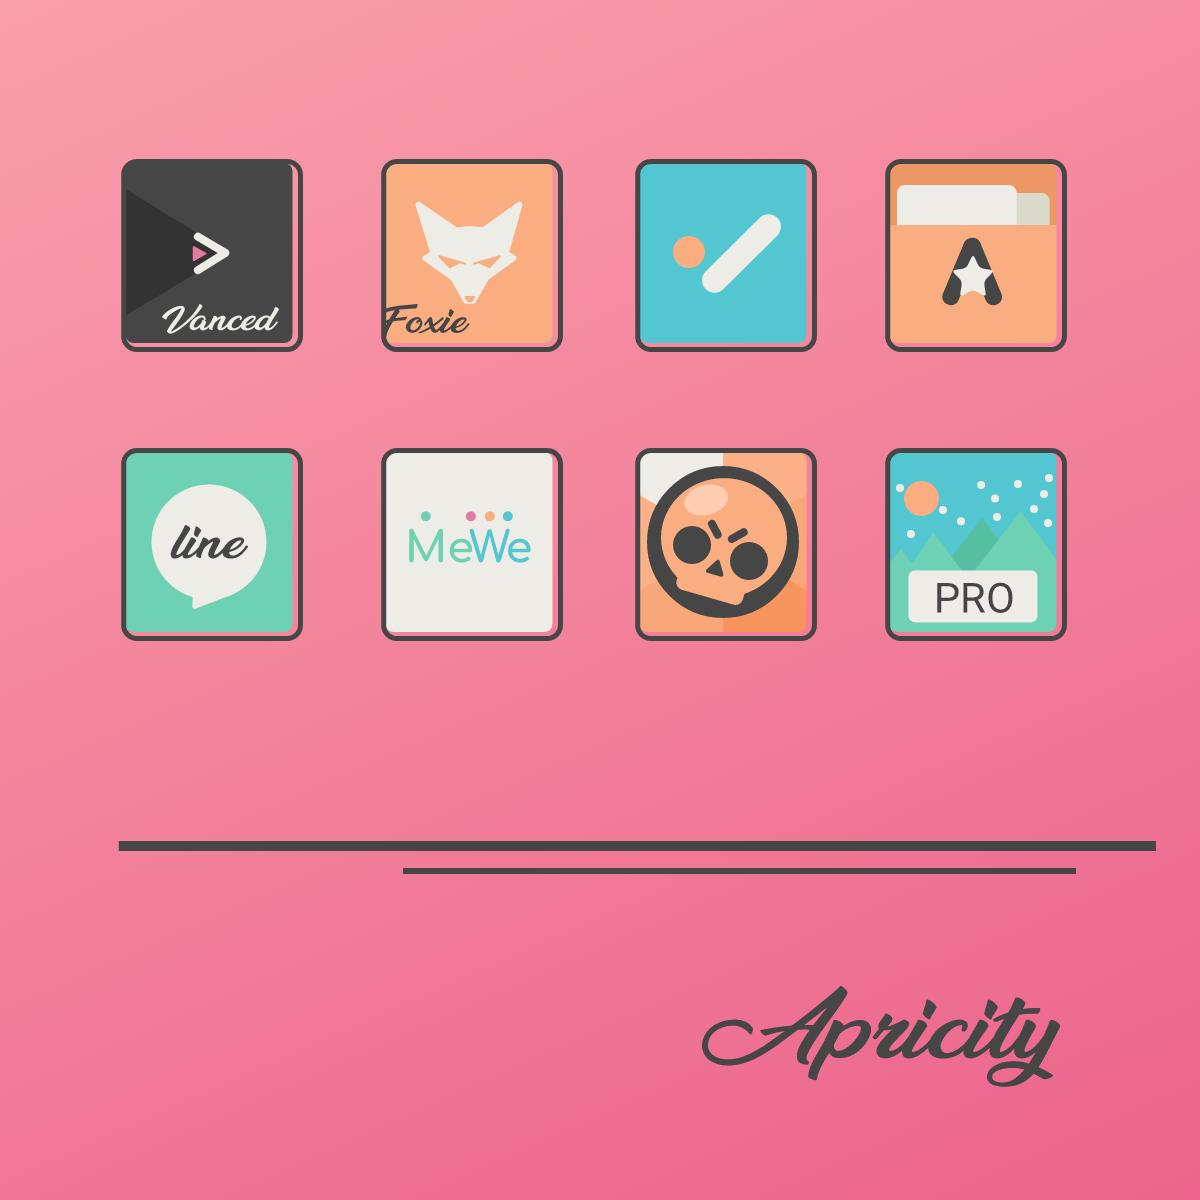 Apricity - Icon Pack for Android - APK Download